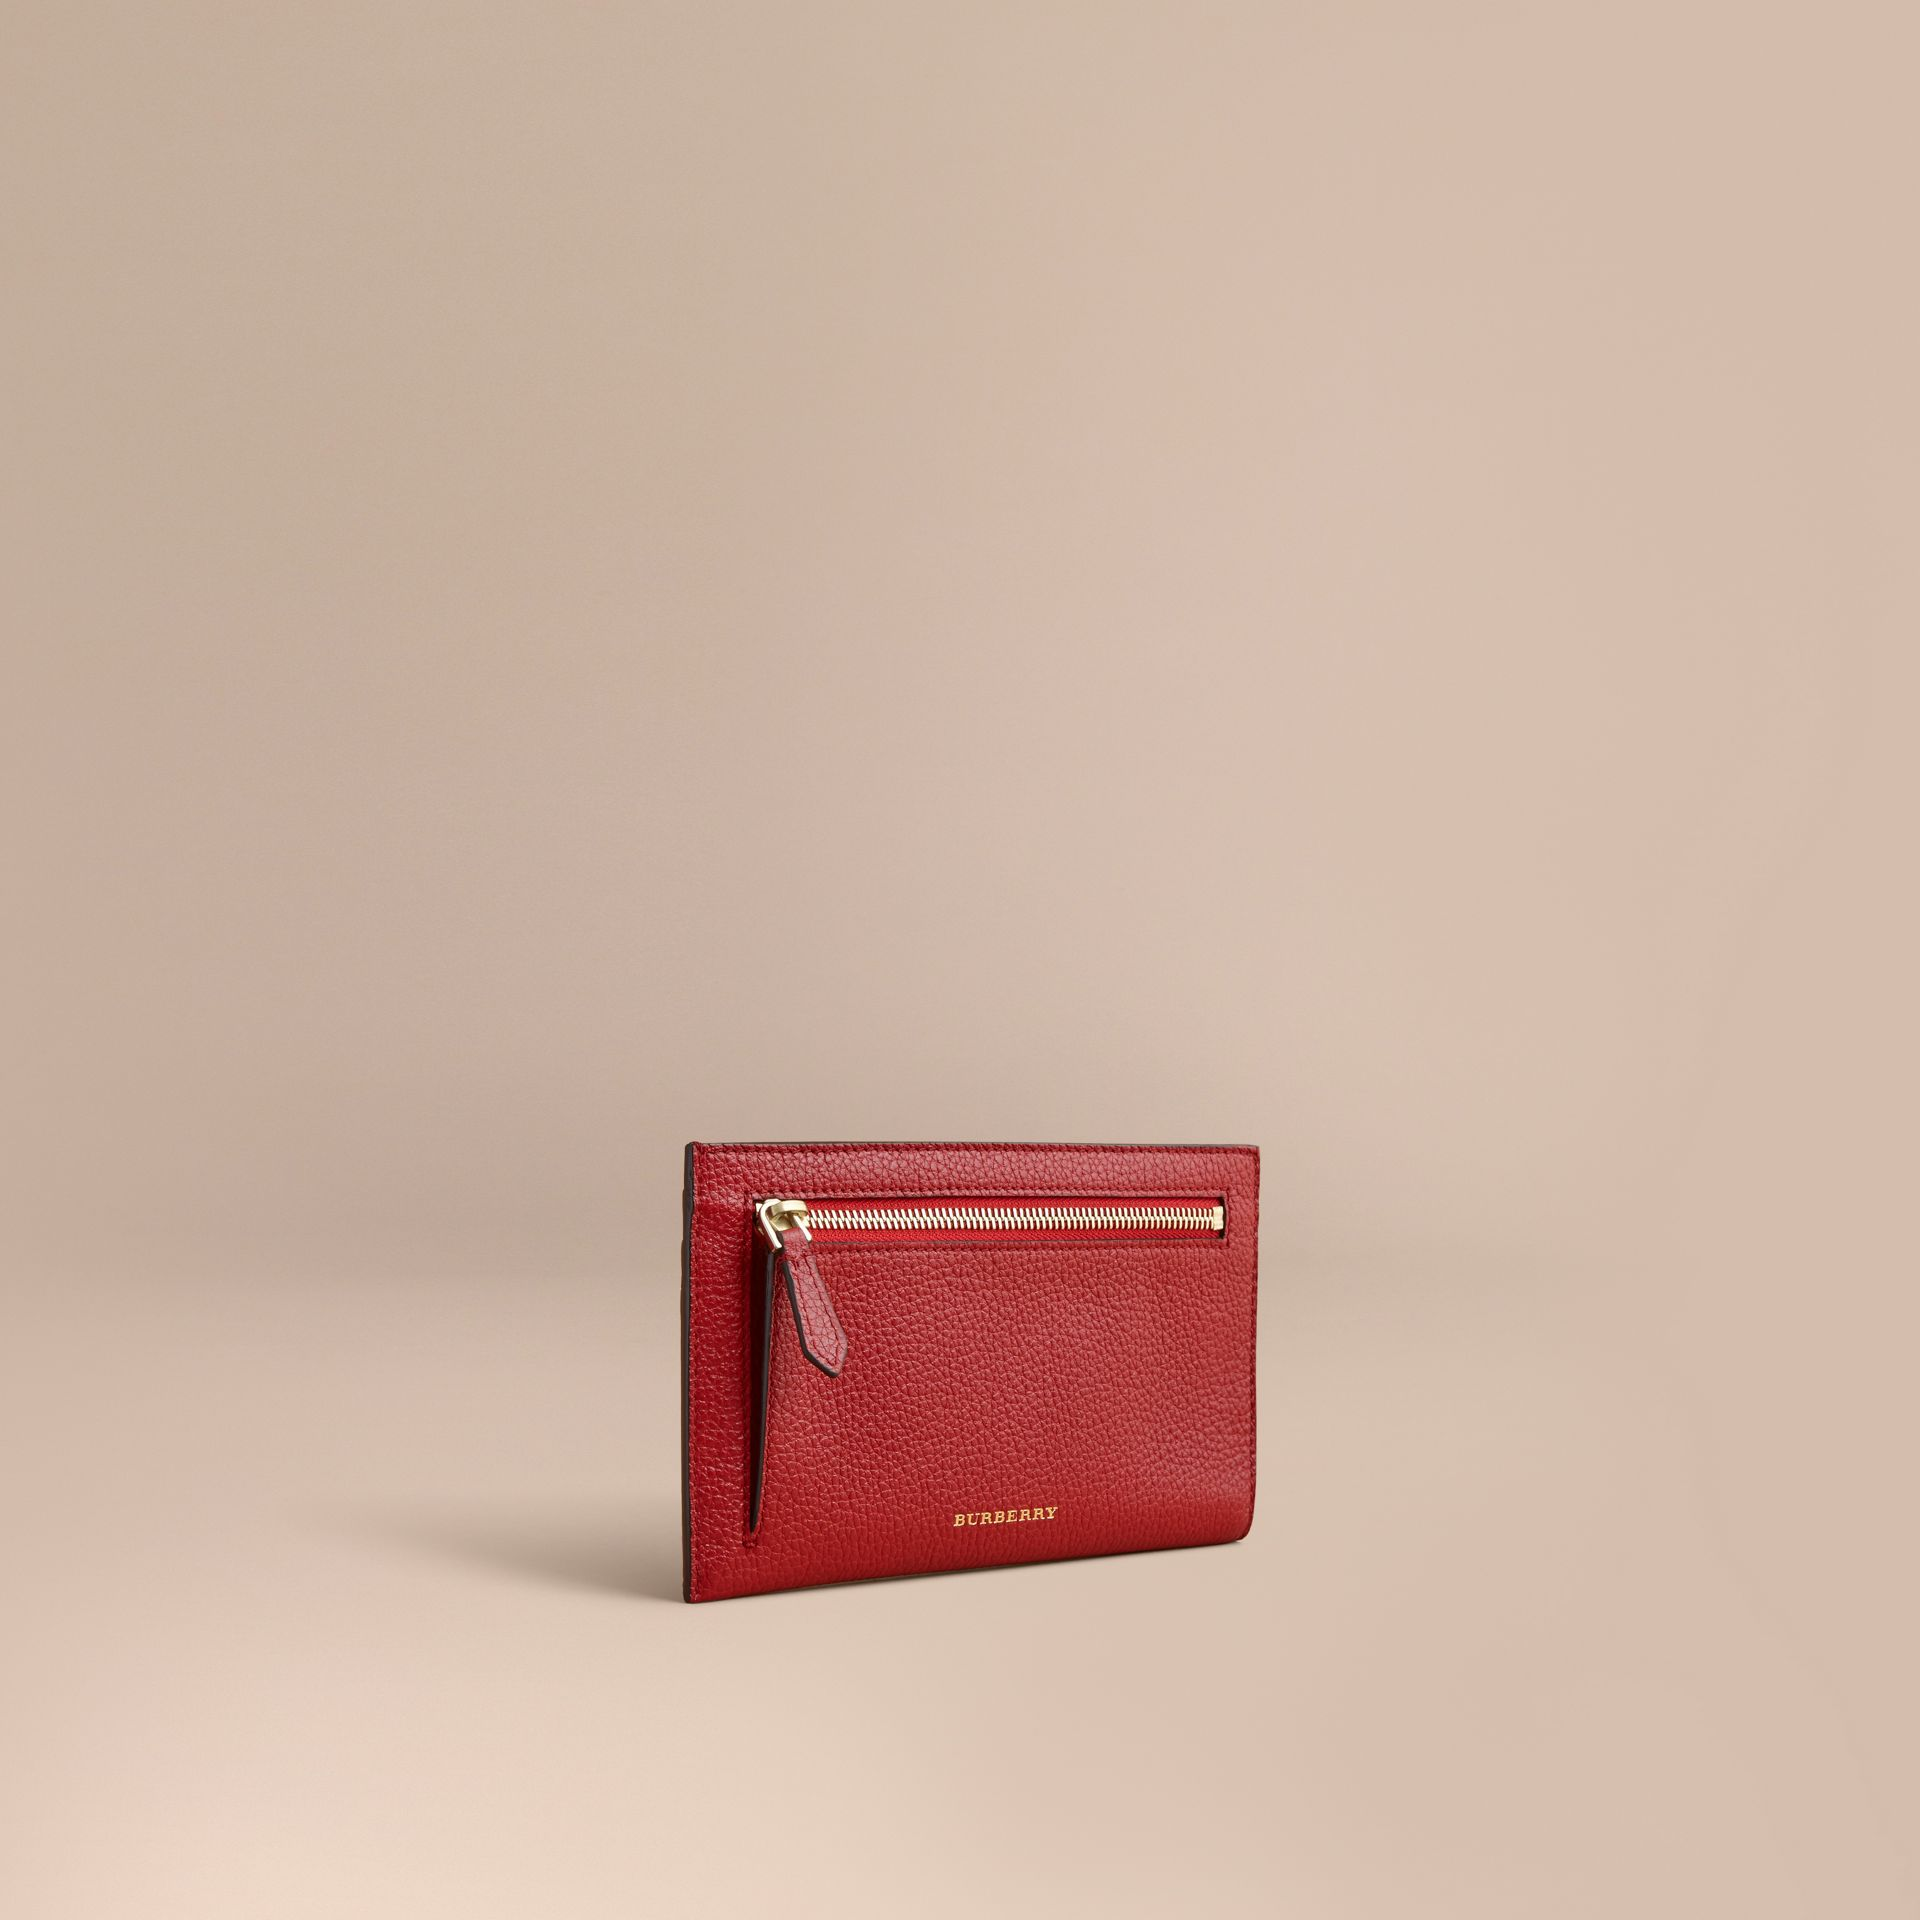 Grainy Leather Travel Case in Parade Red - Women | Burberry - gallery image 1